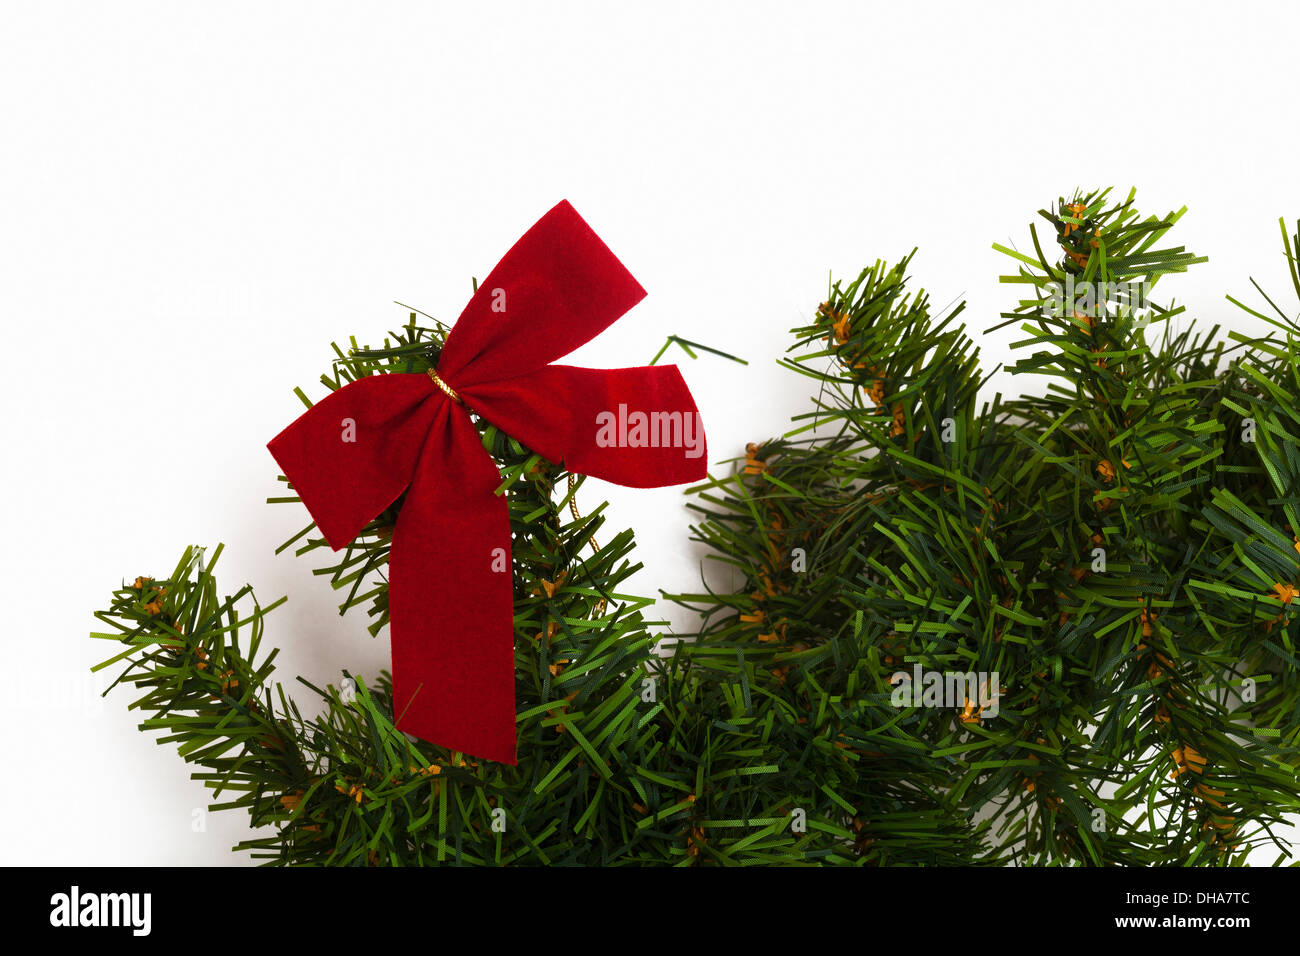 A red bow on a Christmas garland - Stock Image